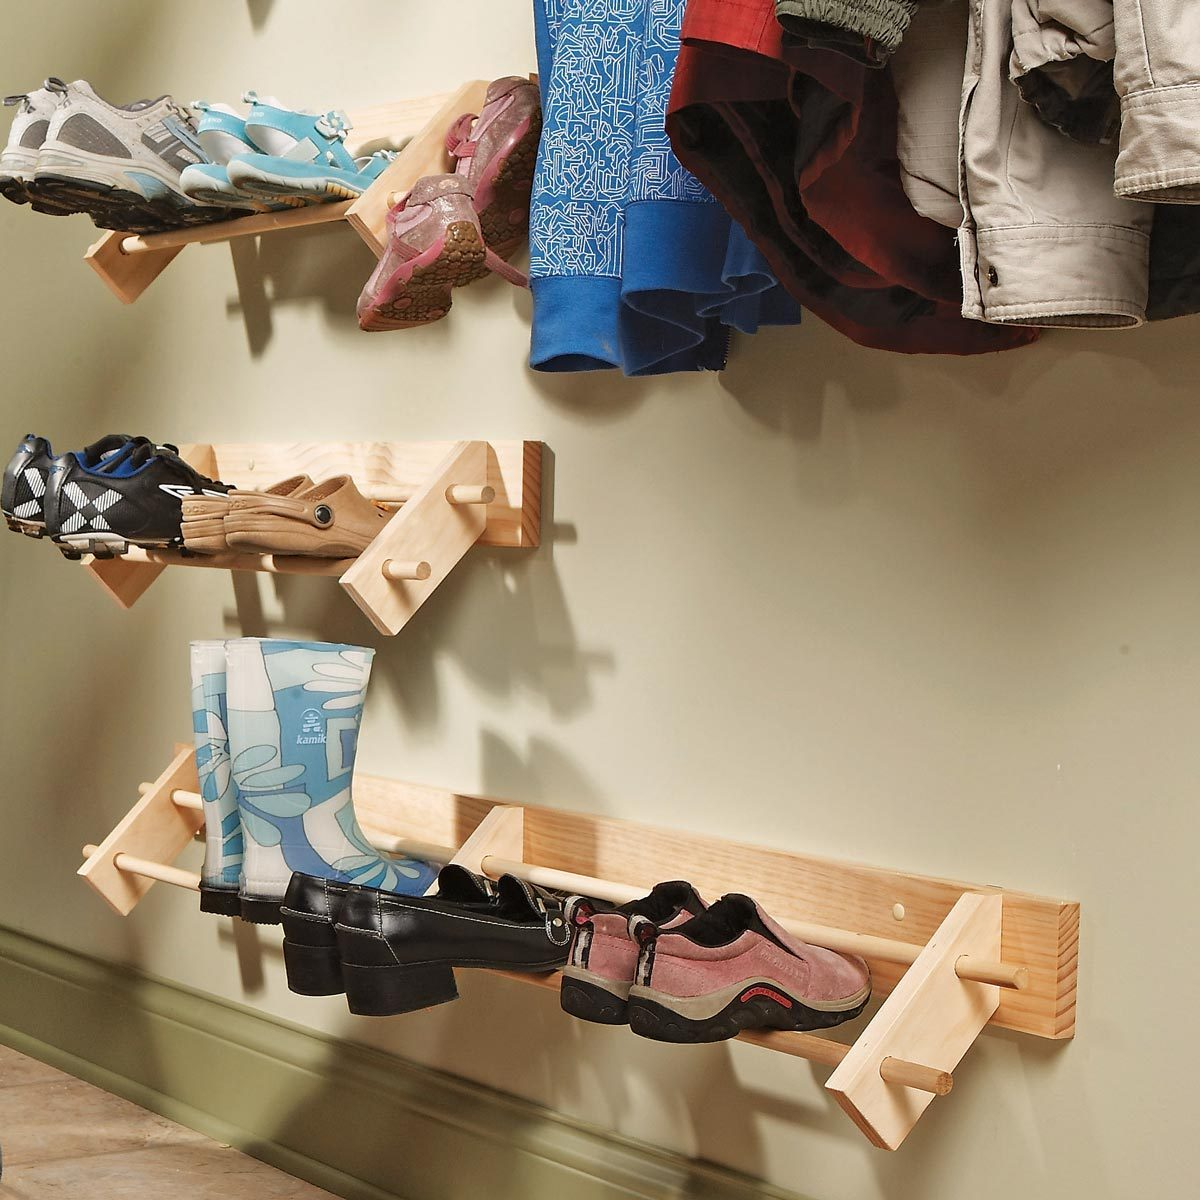 DIY shoe organizer storage